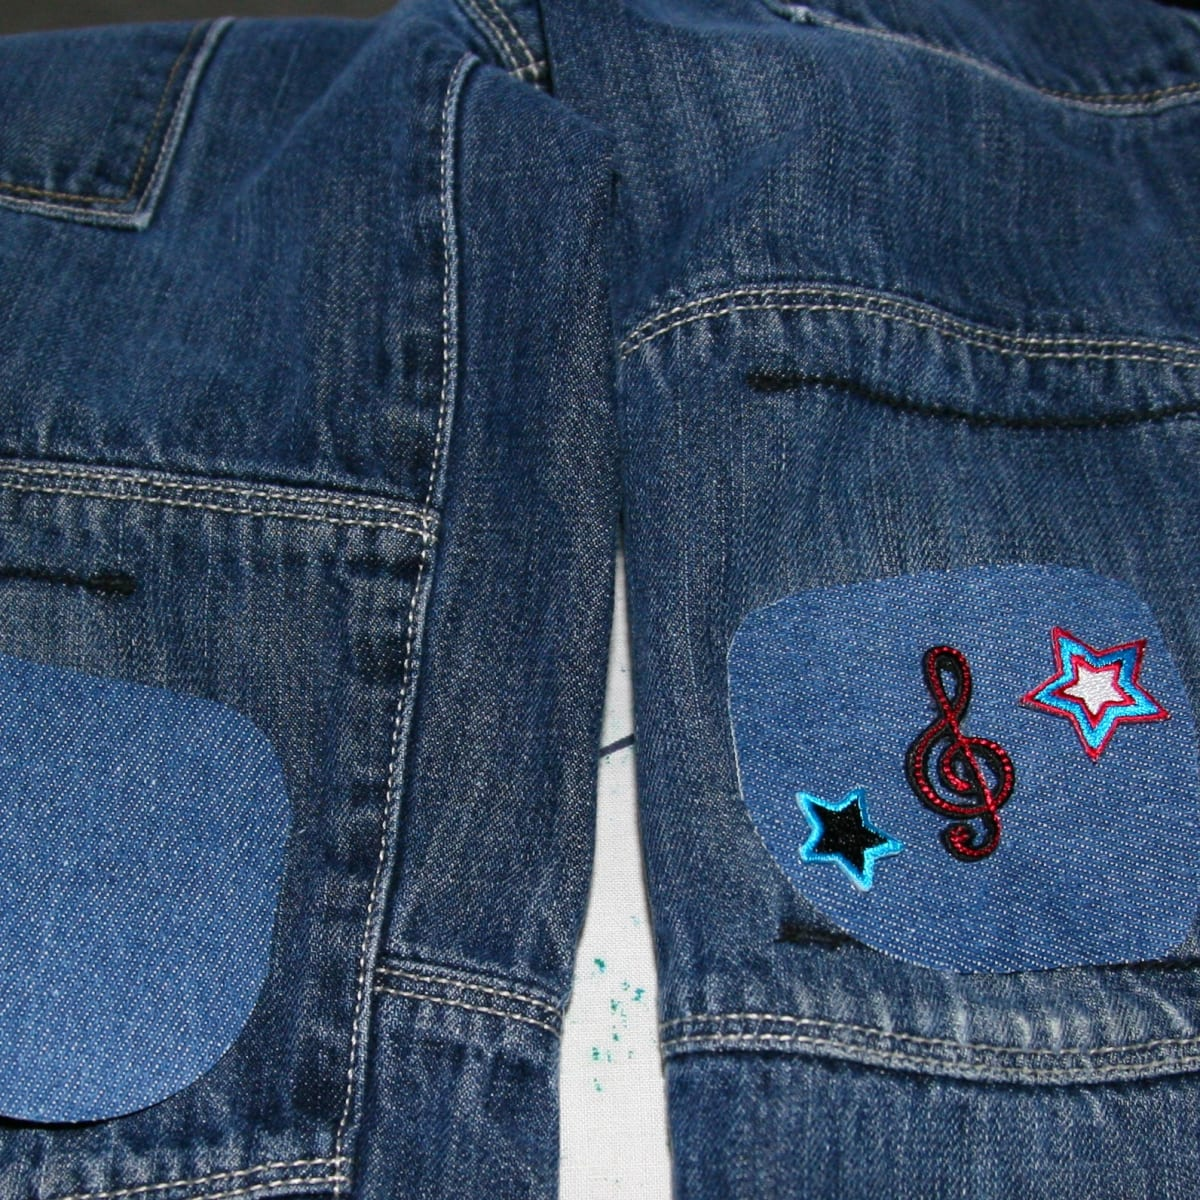 How To Patch Jeans With Iron On Patches Feltmagnet Crafts